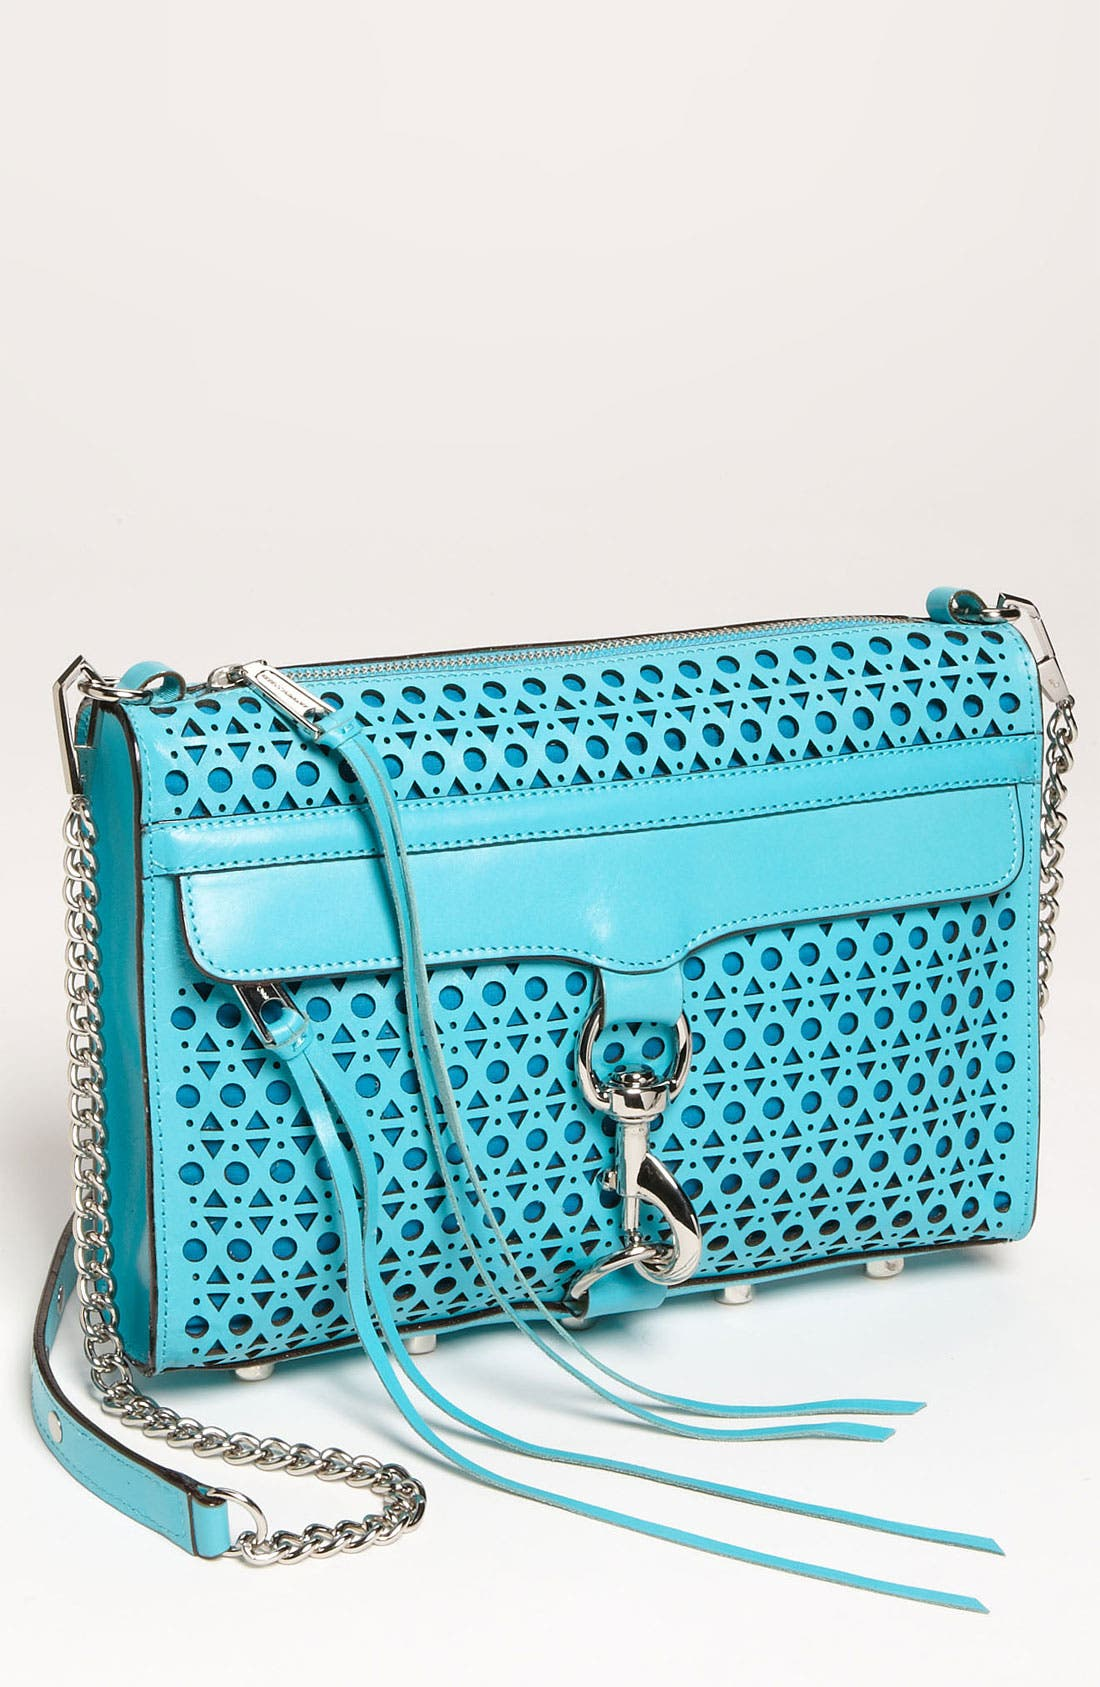 Main Image - Rebecca Minkoff 'MAC' Shoulder Bag